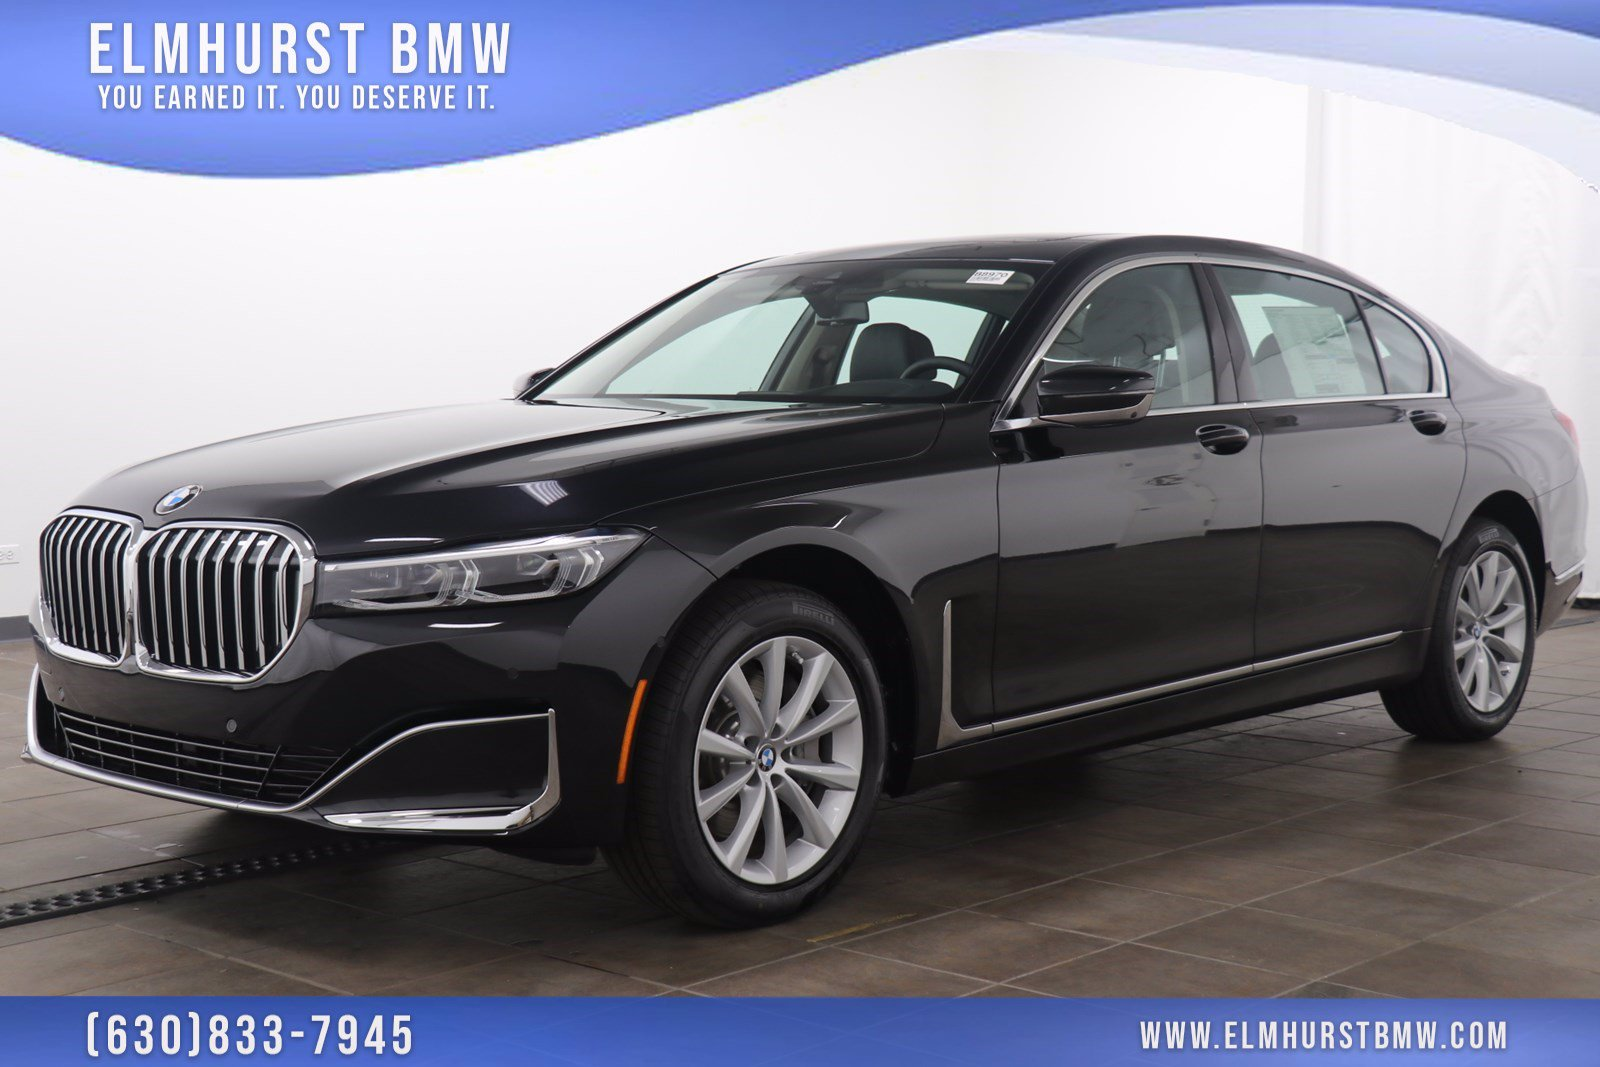 New 2020 Bmw 7 Series 740i Xdrive 4dr Car In Elmhurst B8970